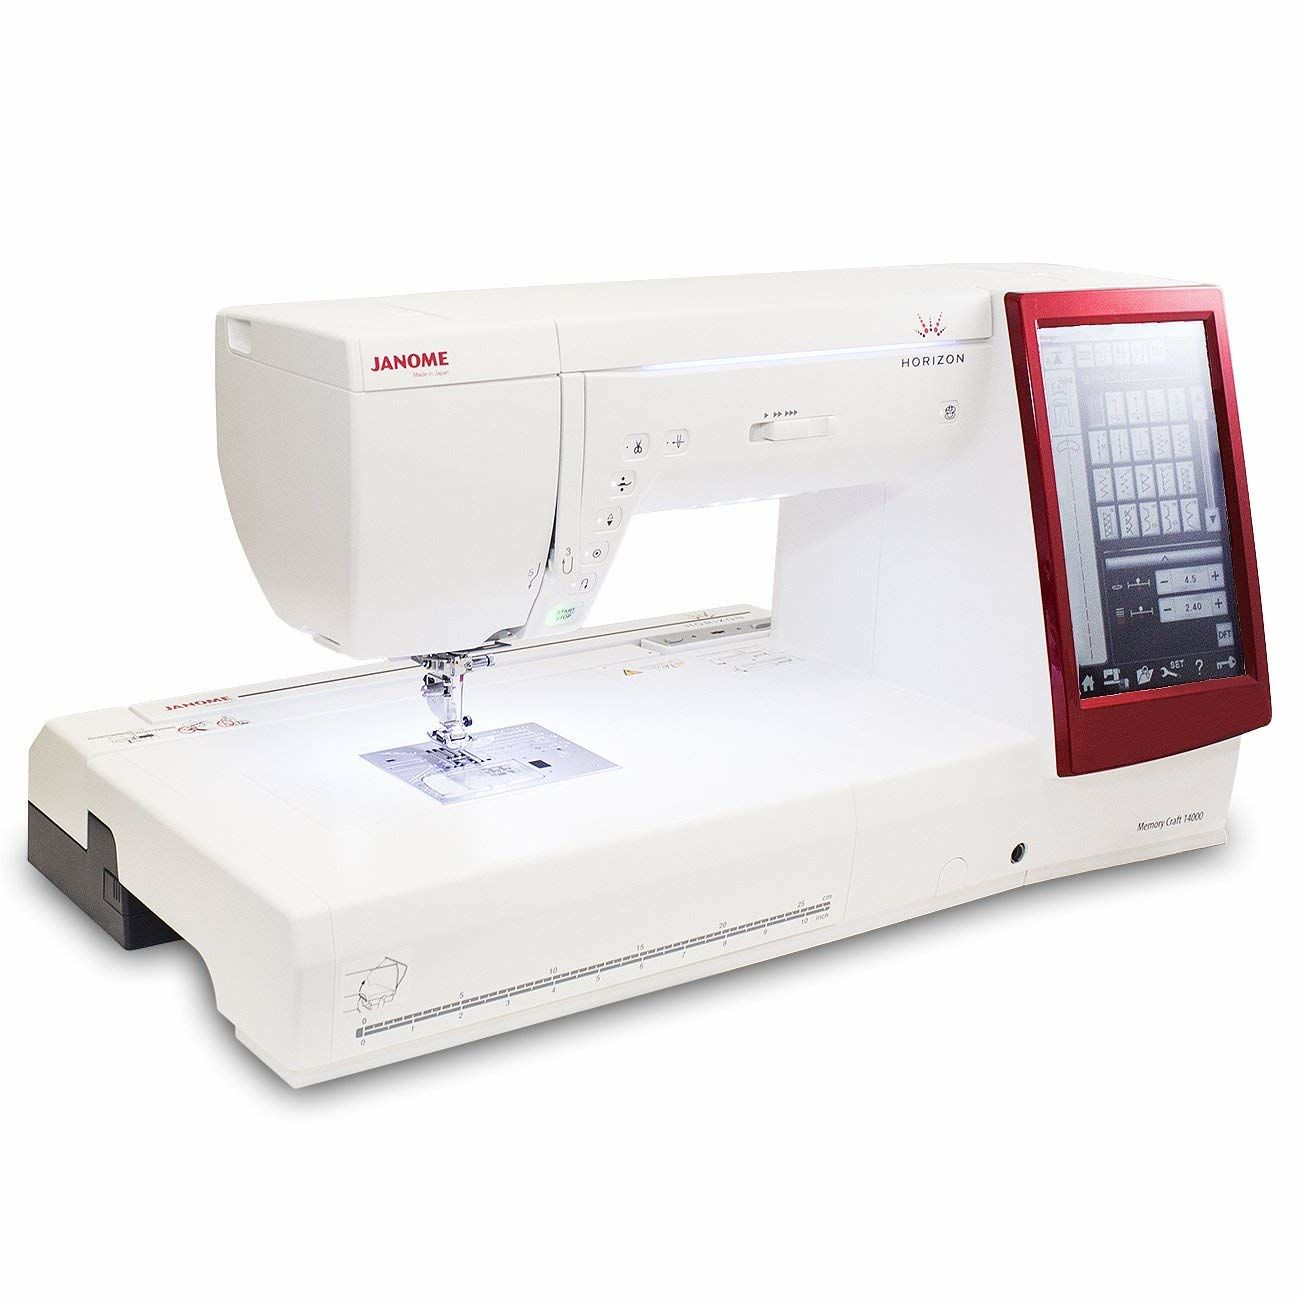 Best Embroidery Machine For Home Business 2020 Comparison